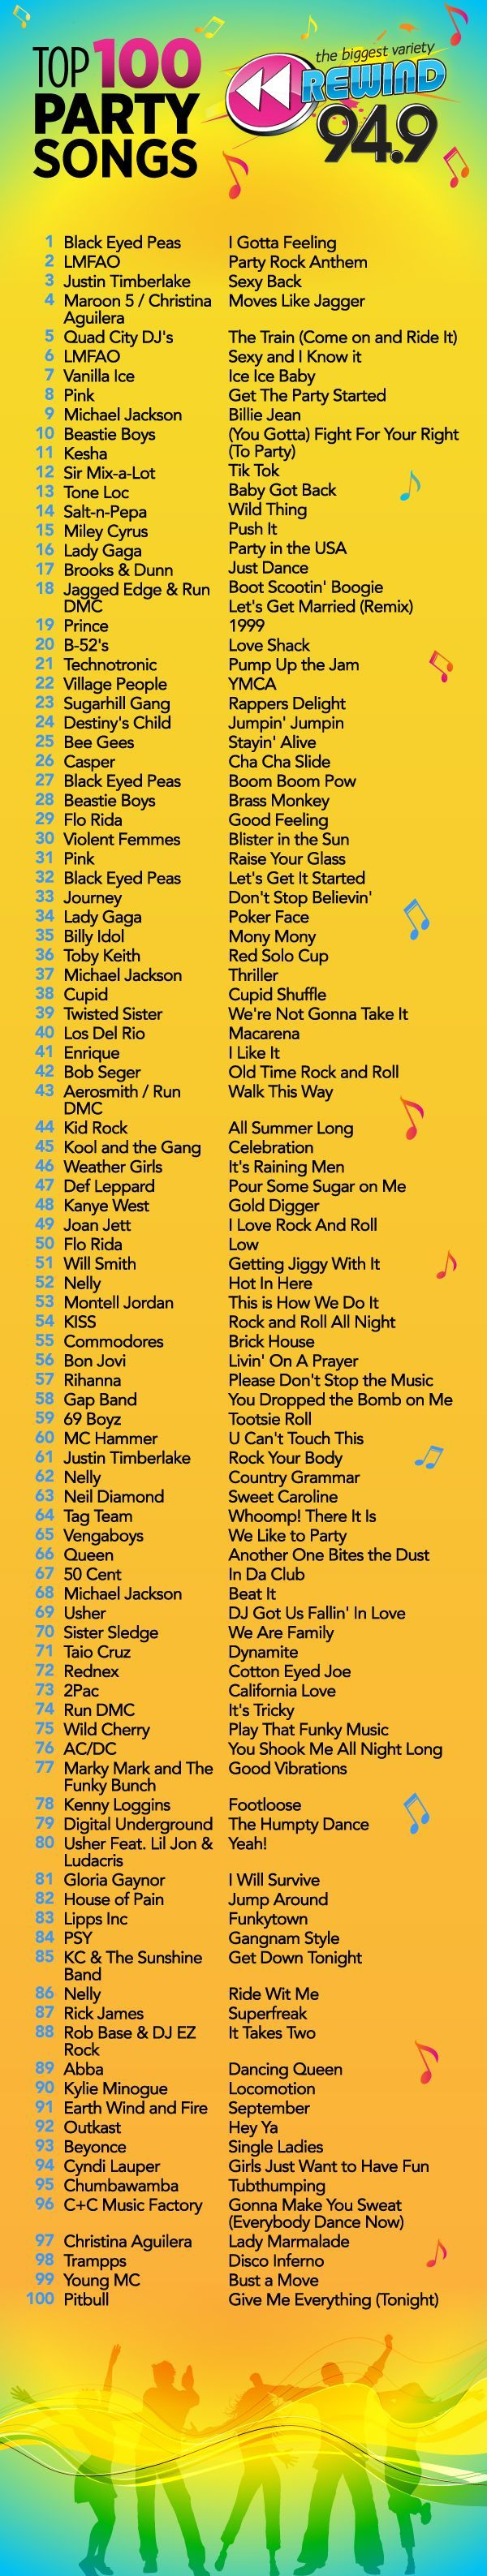 Top 100 Party Songs Snelson Taylor Might Be A Good List To Pick From For Your New Years